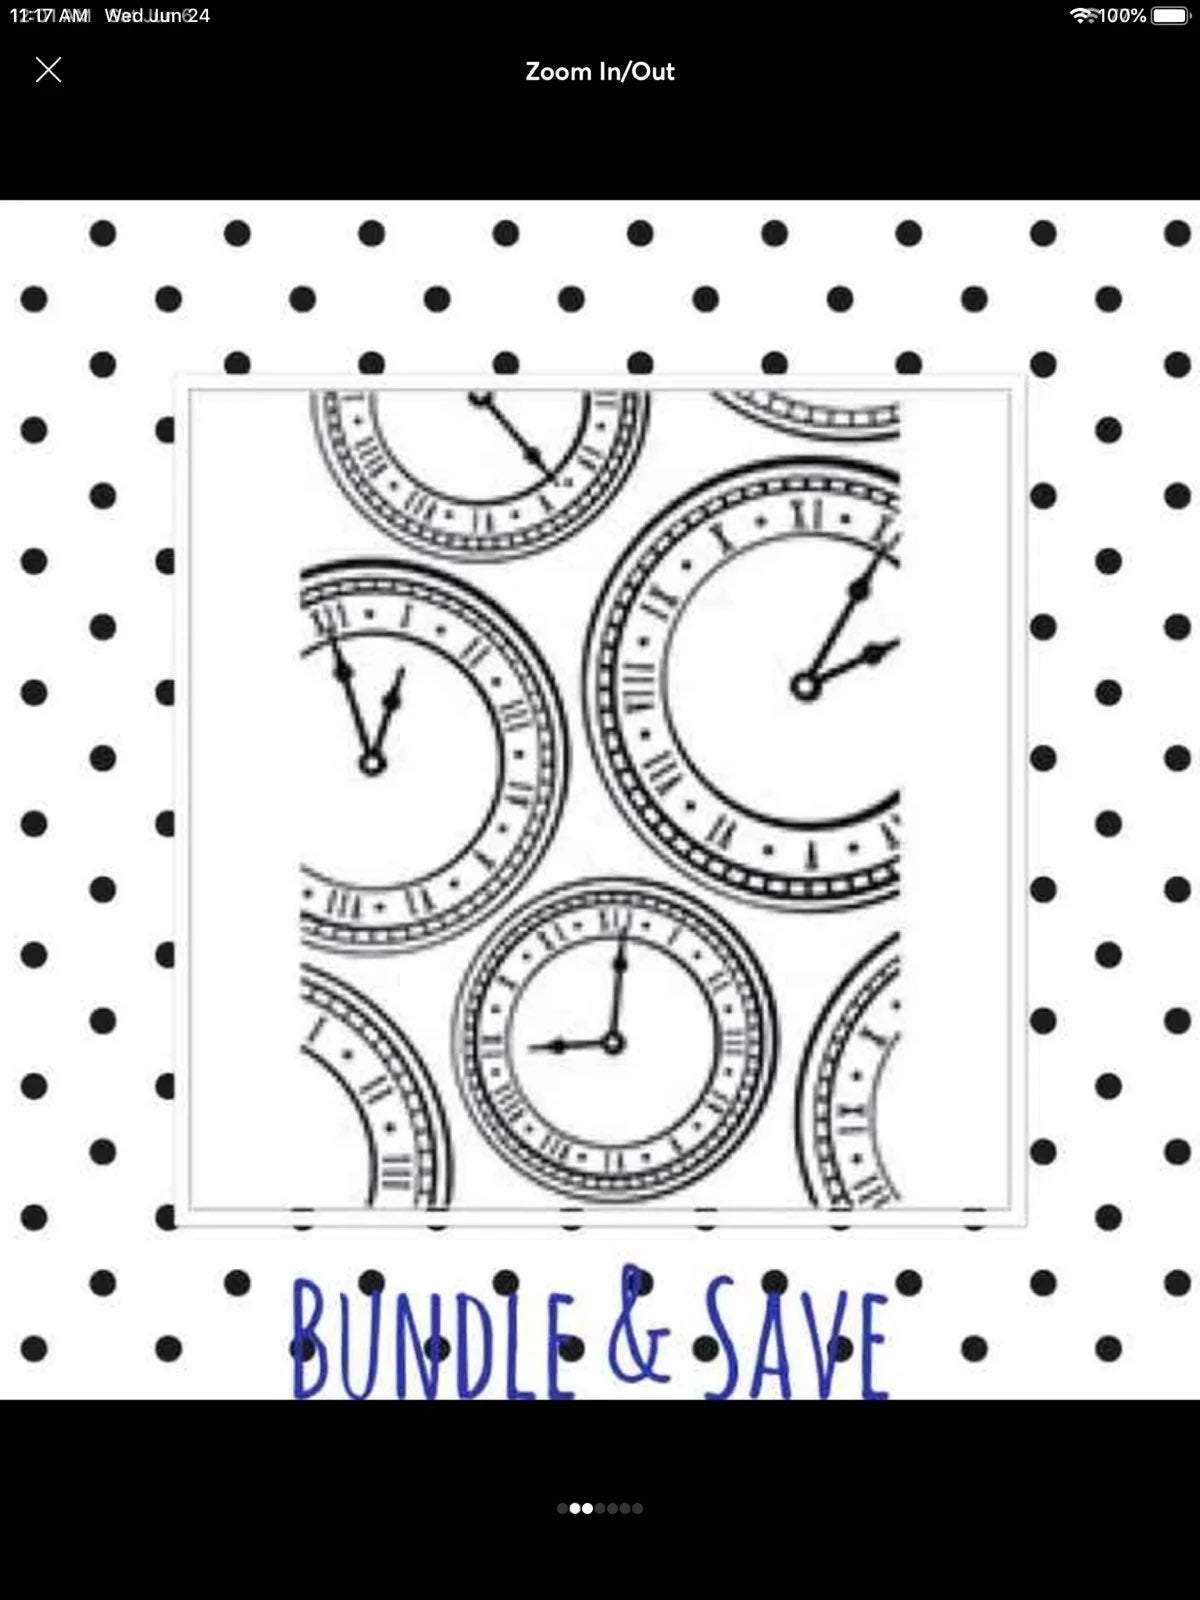 Emb Clock Folder: 4.25 x 5.75 inches